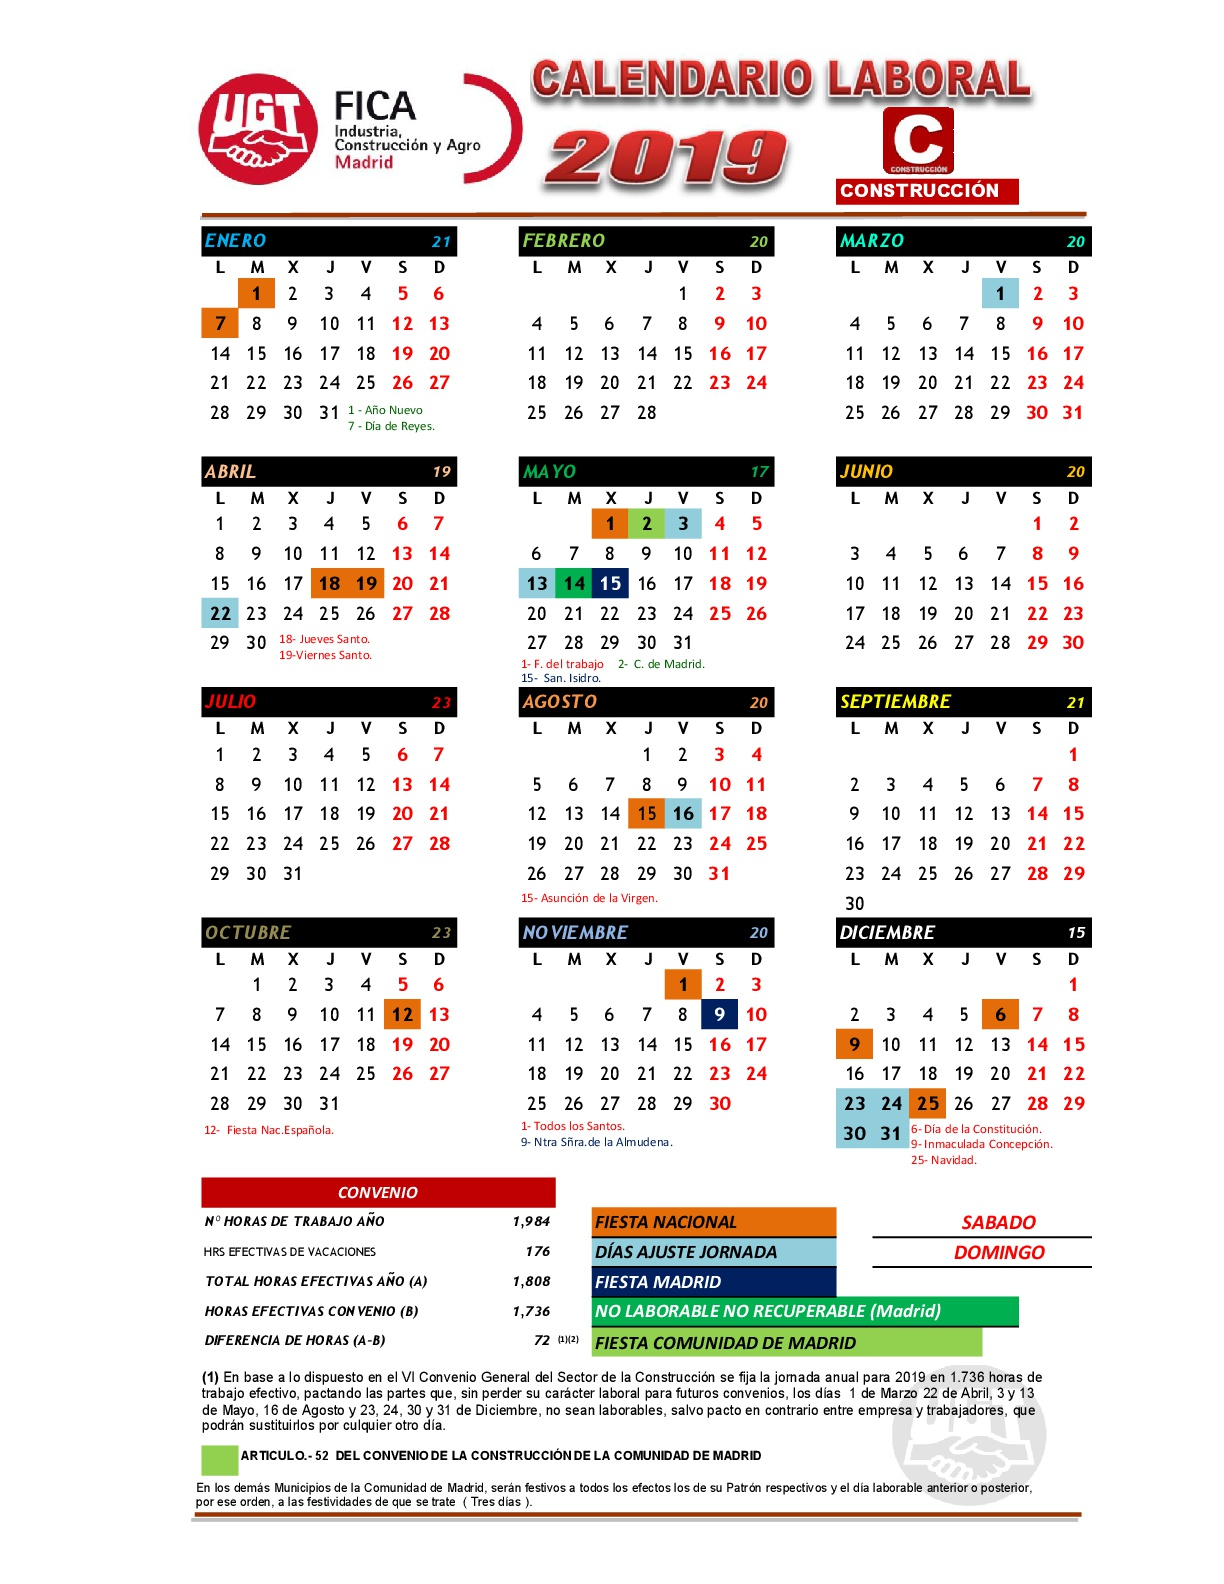 Calendario Laboral Construccion 2020.Comite Acciona Centro 2018